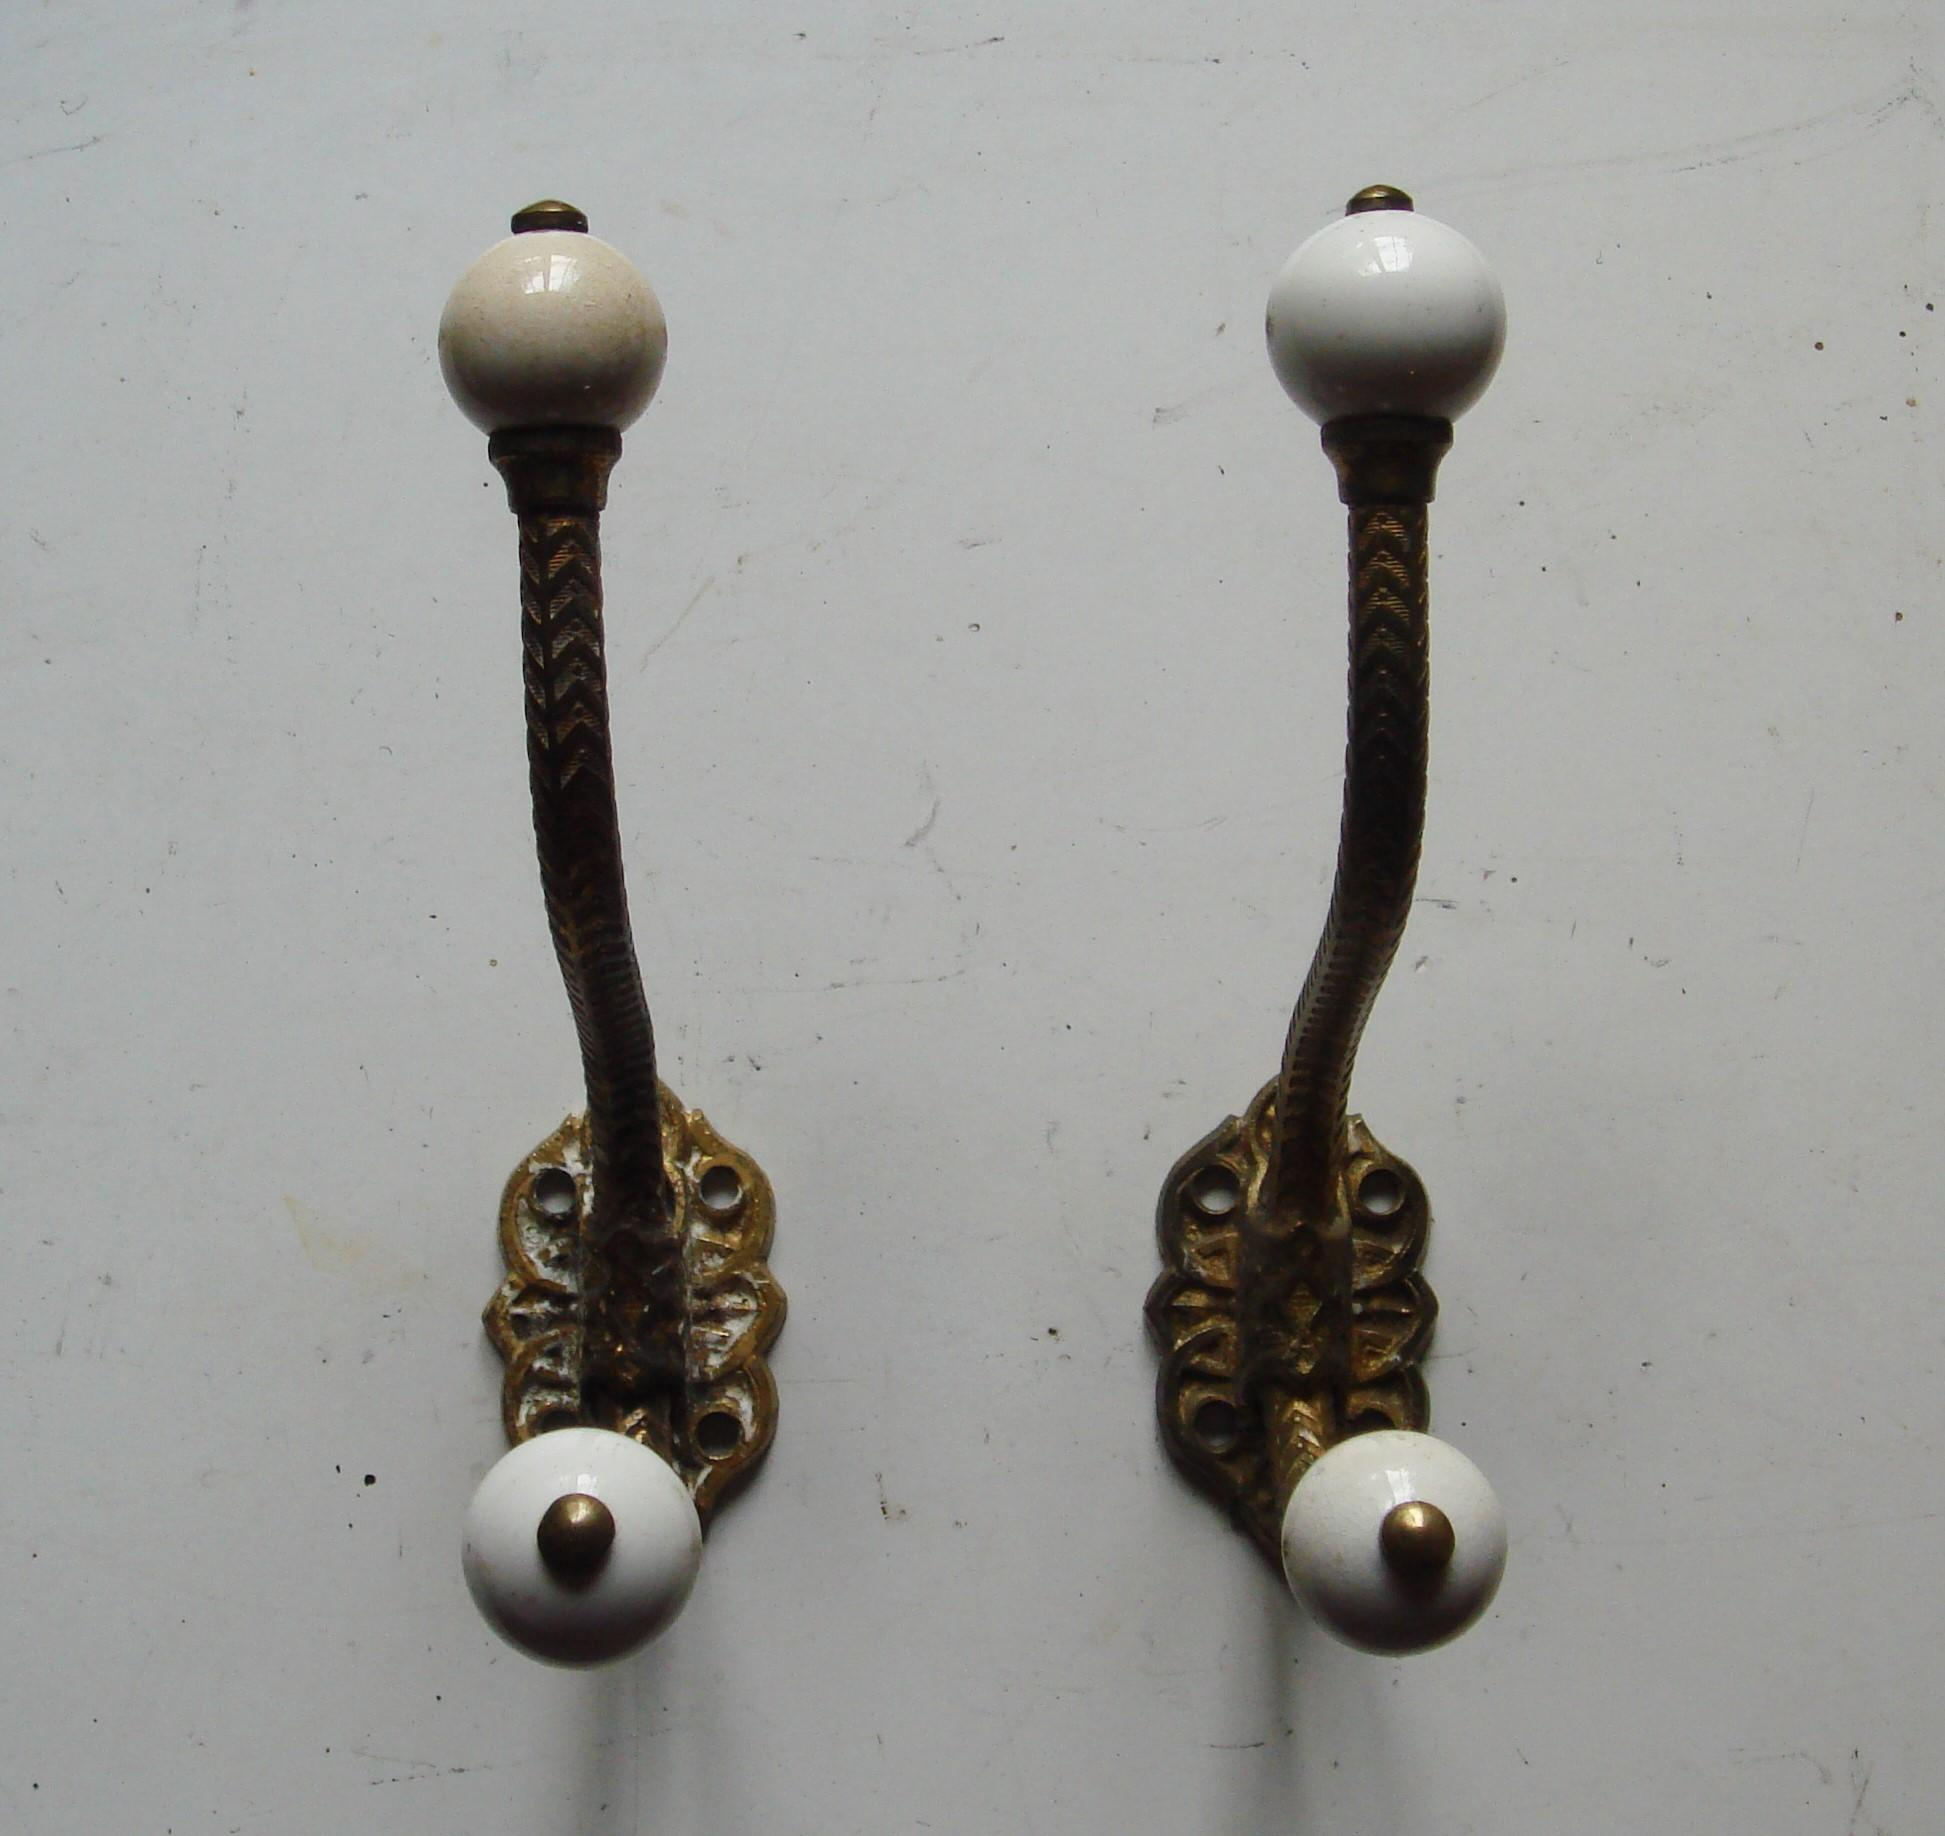 Pair Original Victorian Decorative Brass & Ceramic Hat & Coat Hooks.